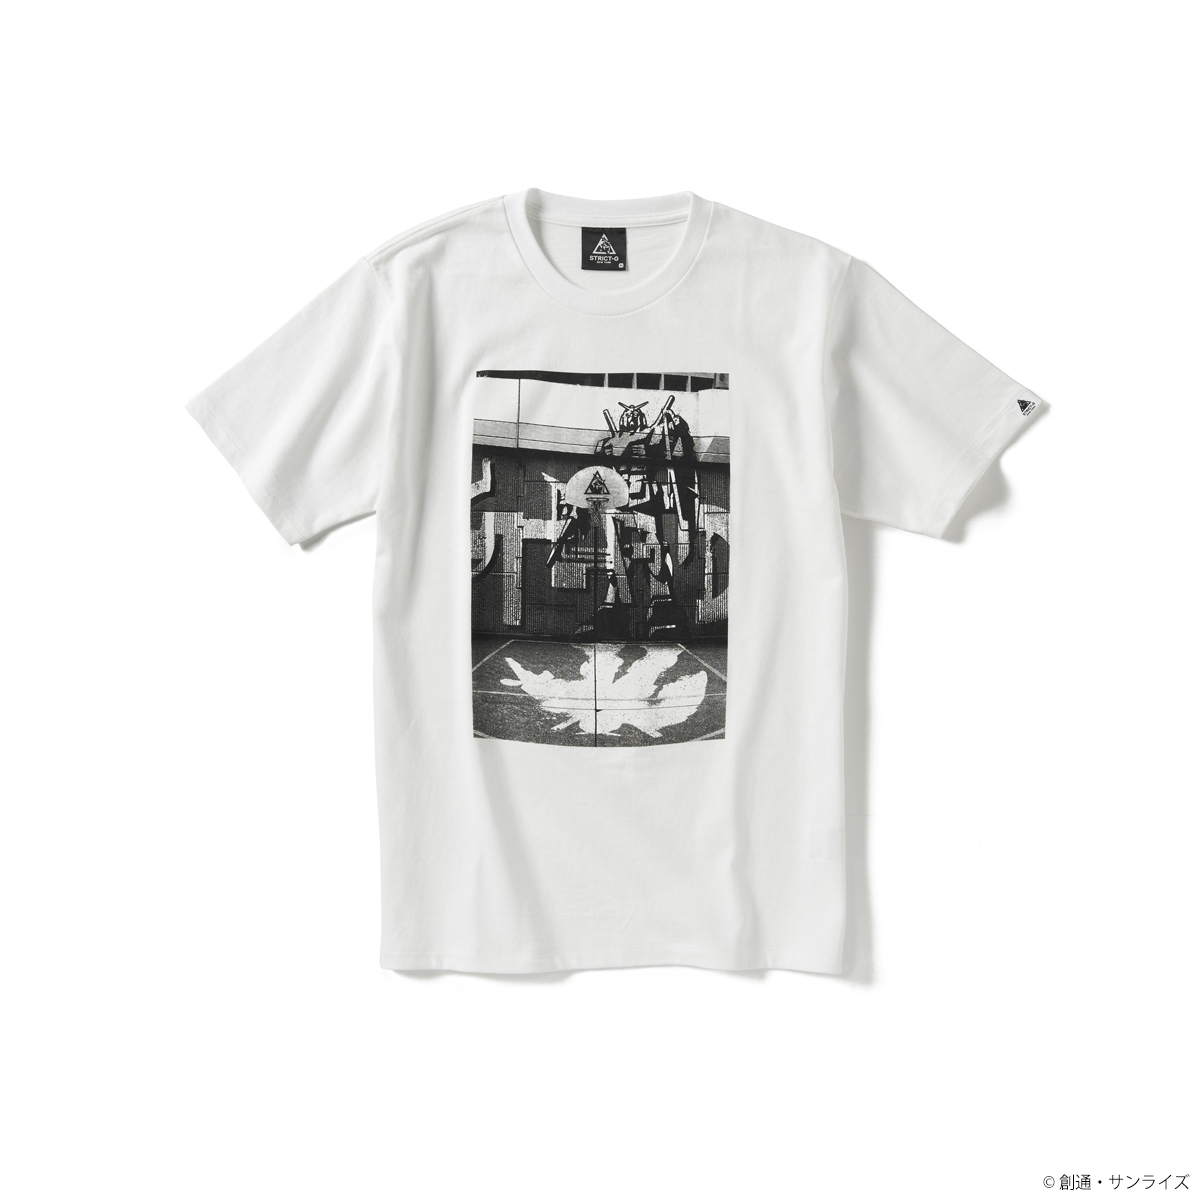 STRICT-G NEW YARK Tシャツ FLICK RISE UP柄